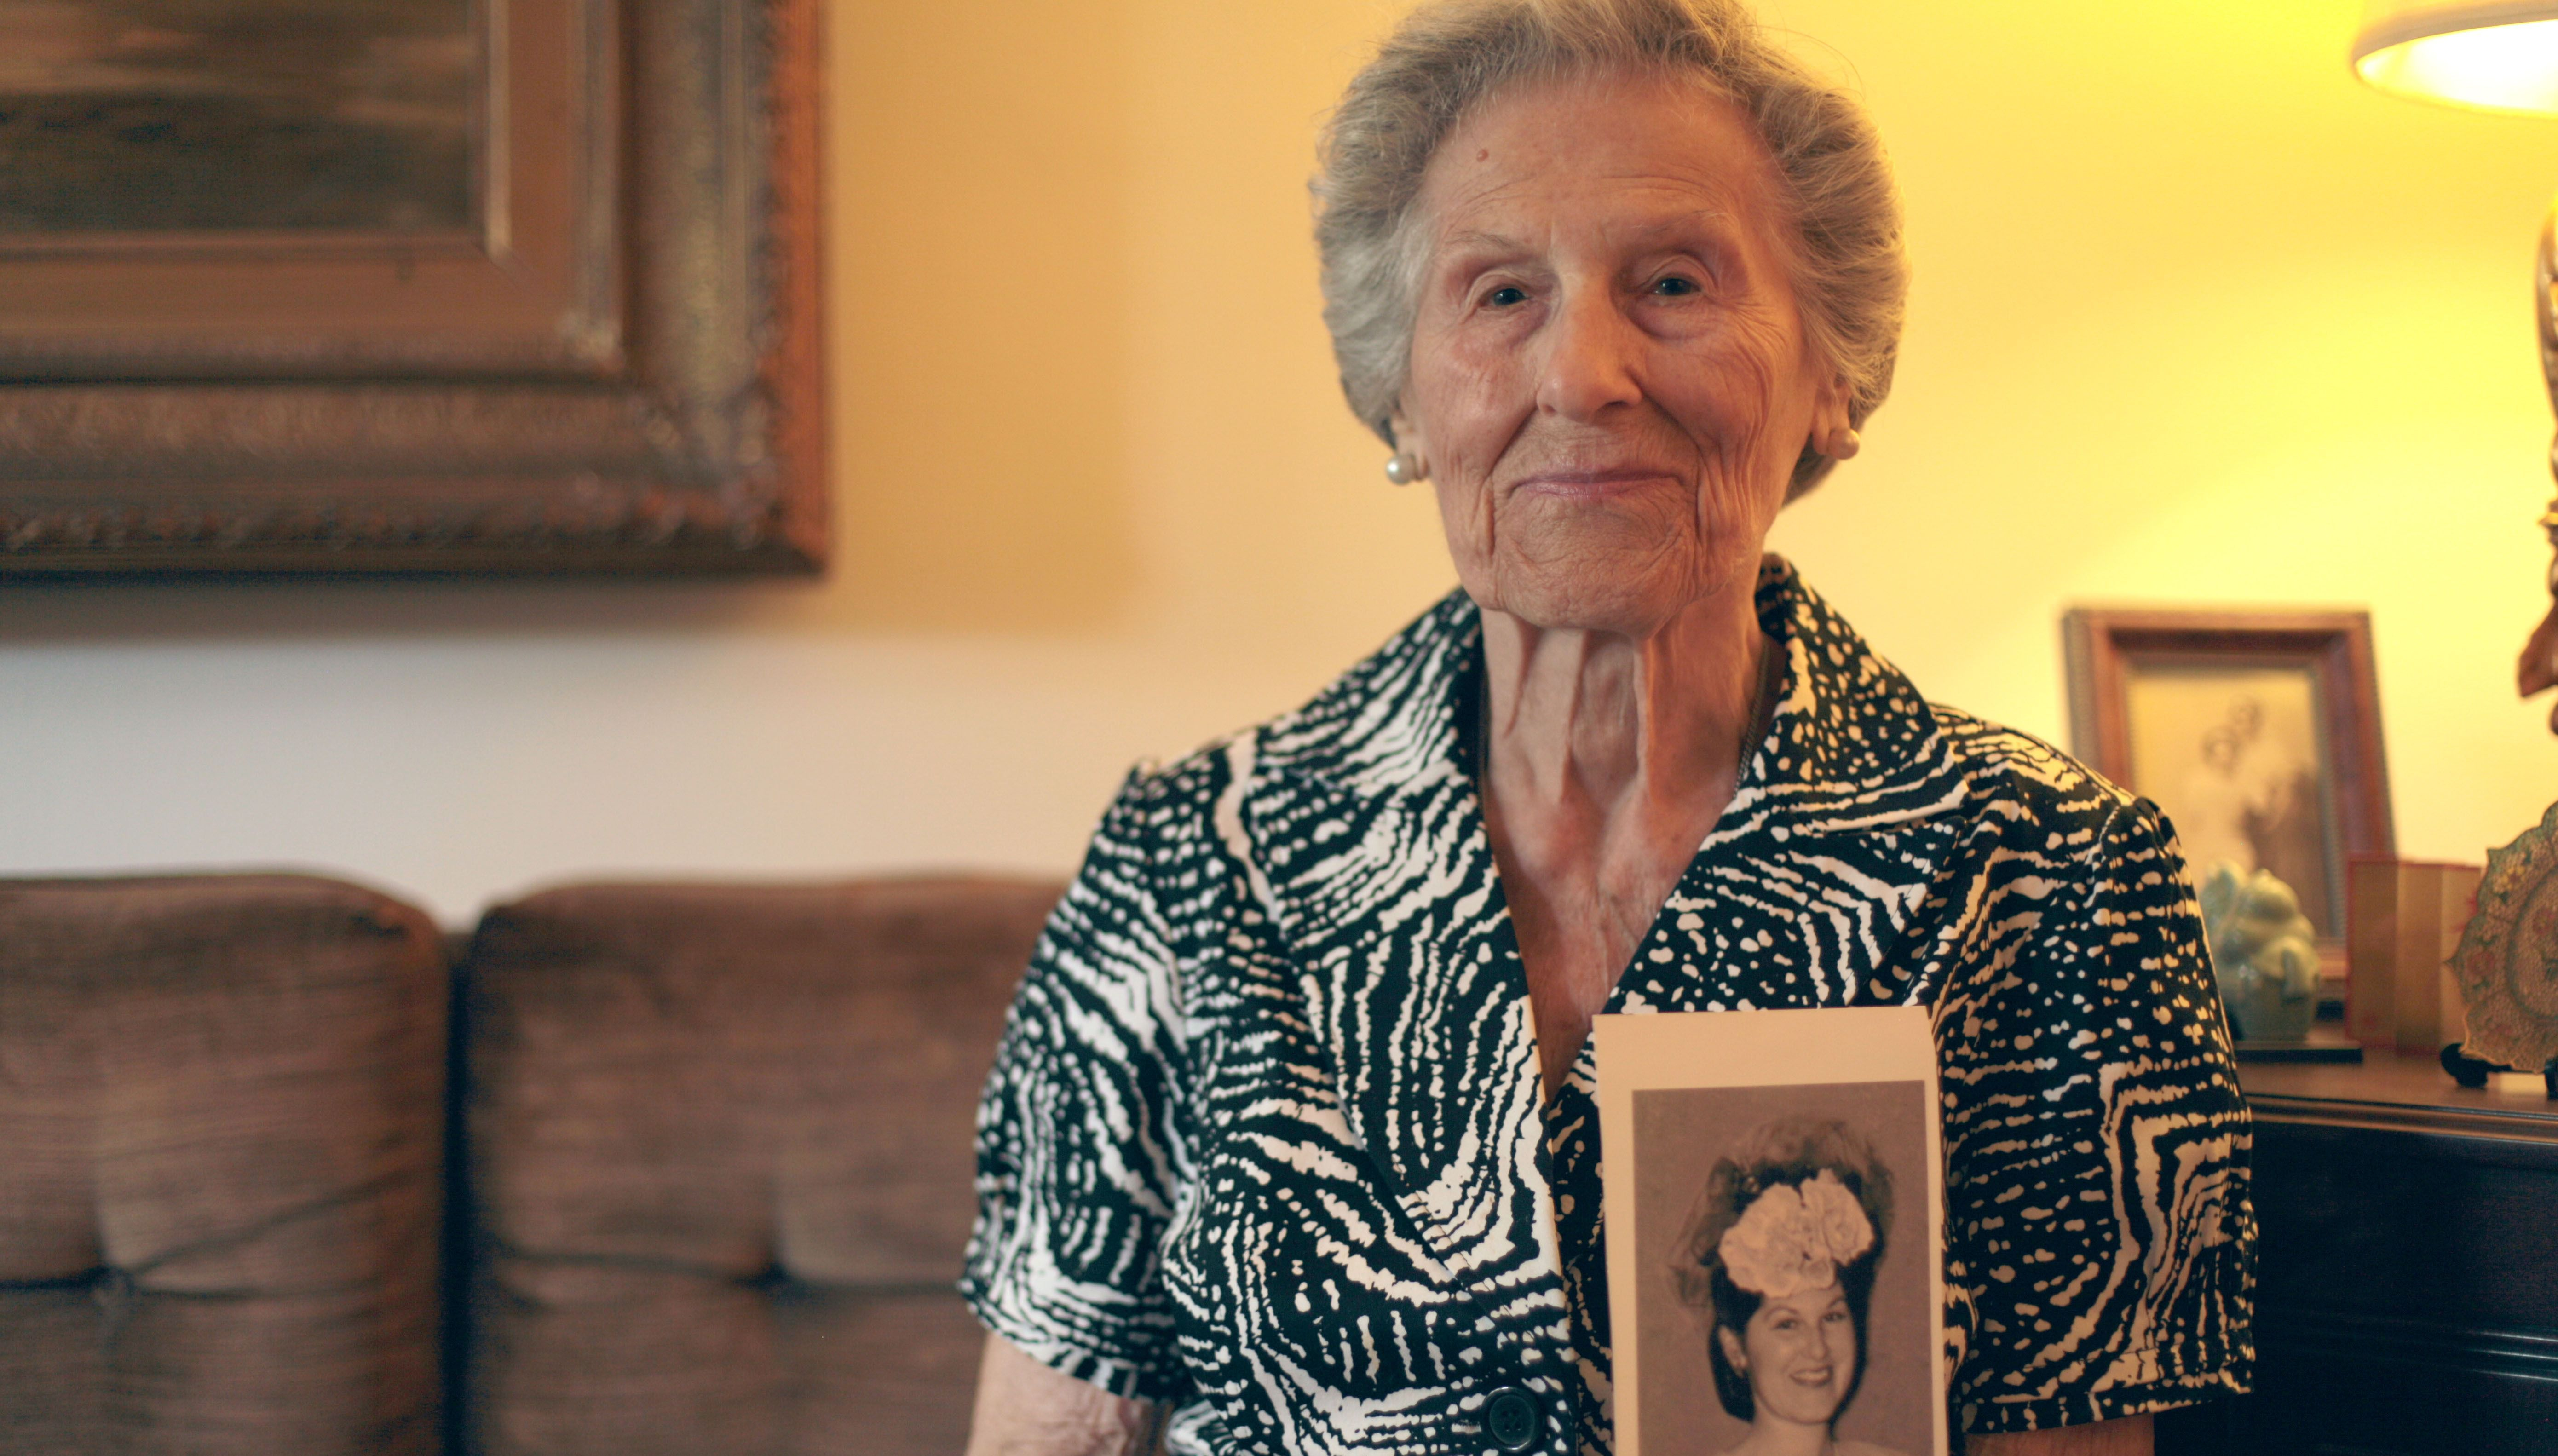 Now and Then: Molveine Karan, 98, holds a photo of herself taken 70 years ago at a friend's wedding.